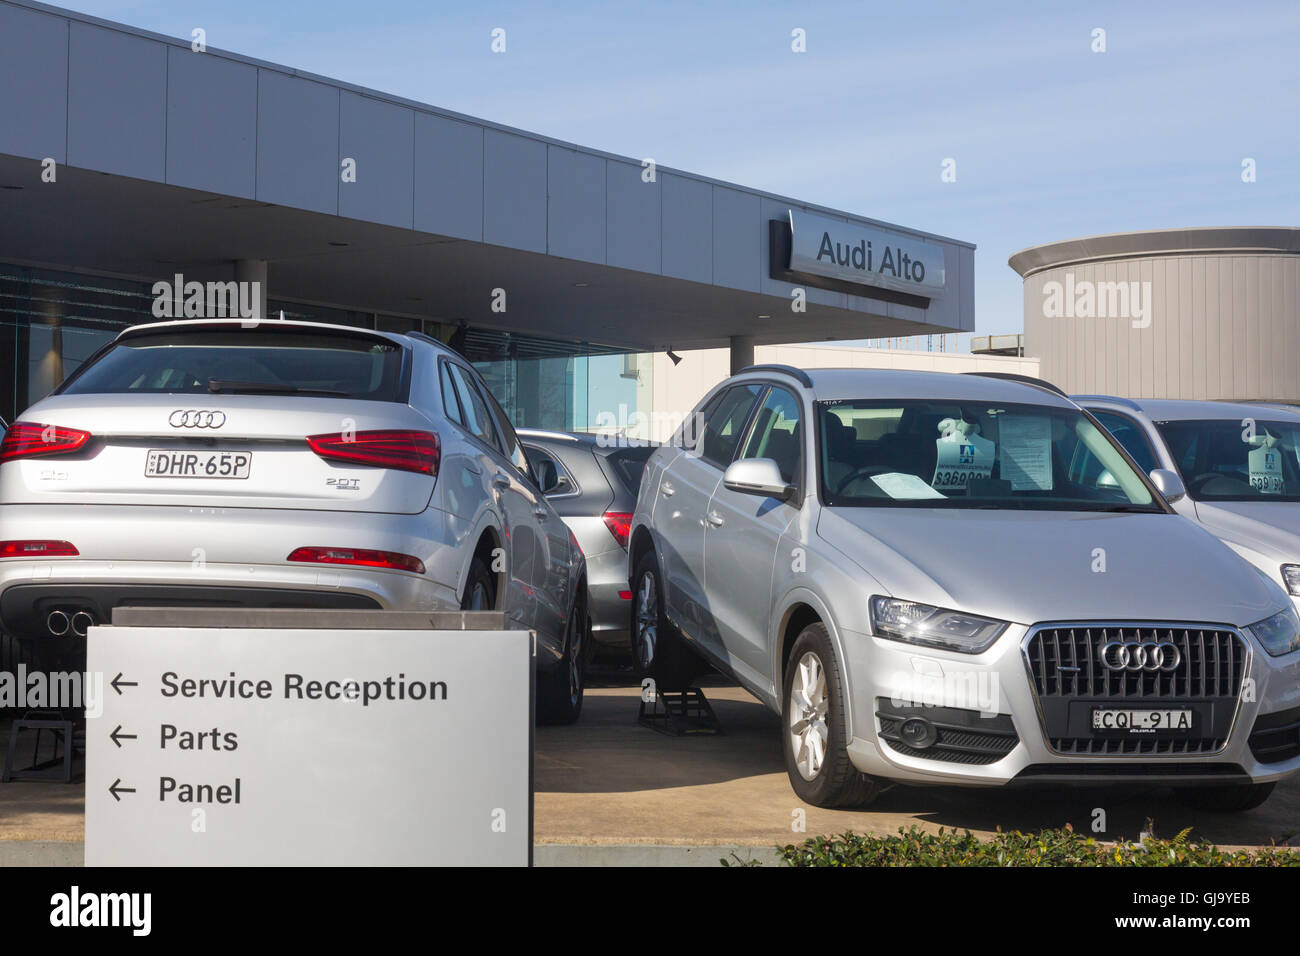 Alto Audi Car Dealership And Service In ChatswoodNorth Stock - Audi car service